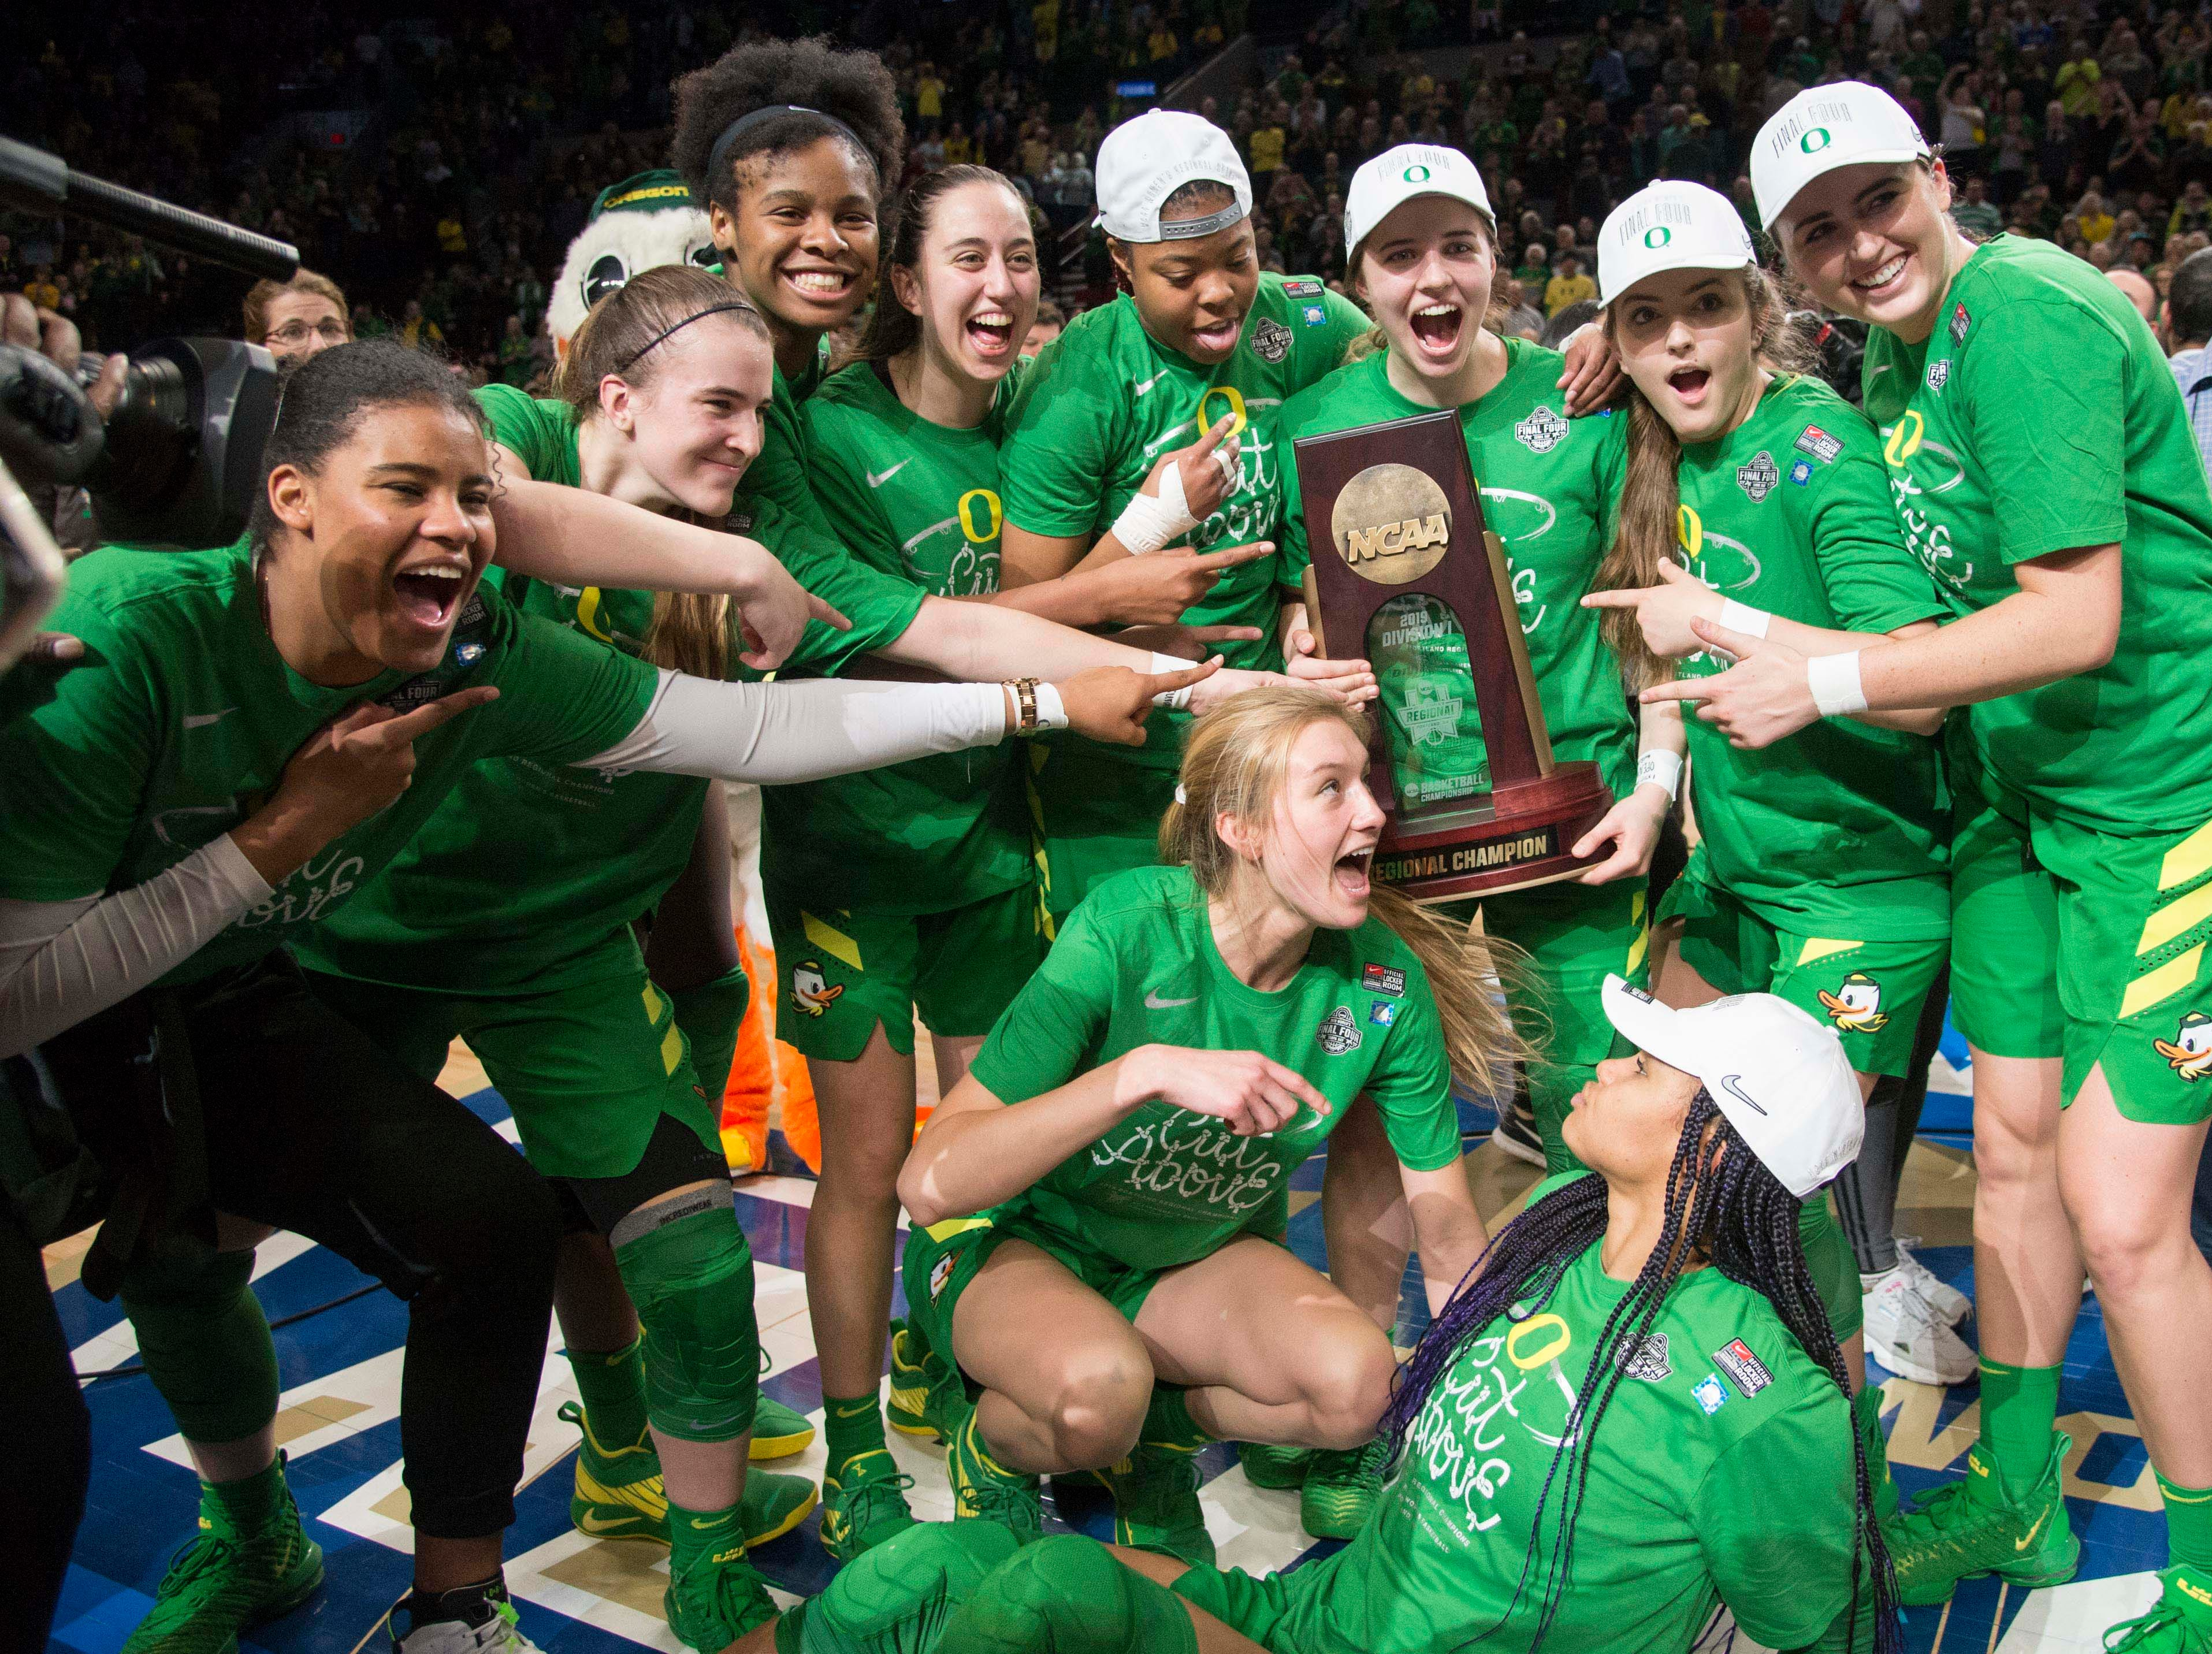 The Oregon Ducks women's basketball team celebrate after a game against the Mississippi State Bulldogs in the championship game of the Portland regional in the women's 2019 NCAA Tournament at Moda Center. The Oregon Ducks beat the Mississippi State Bulldogs 88-84.